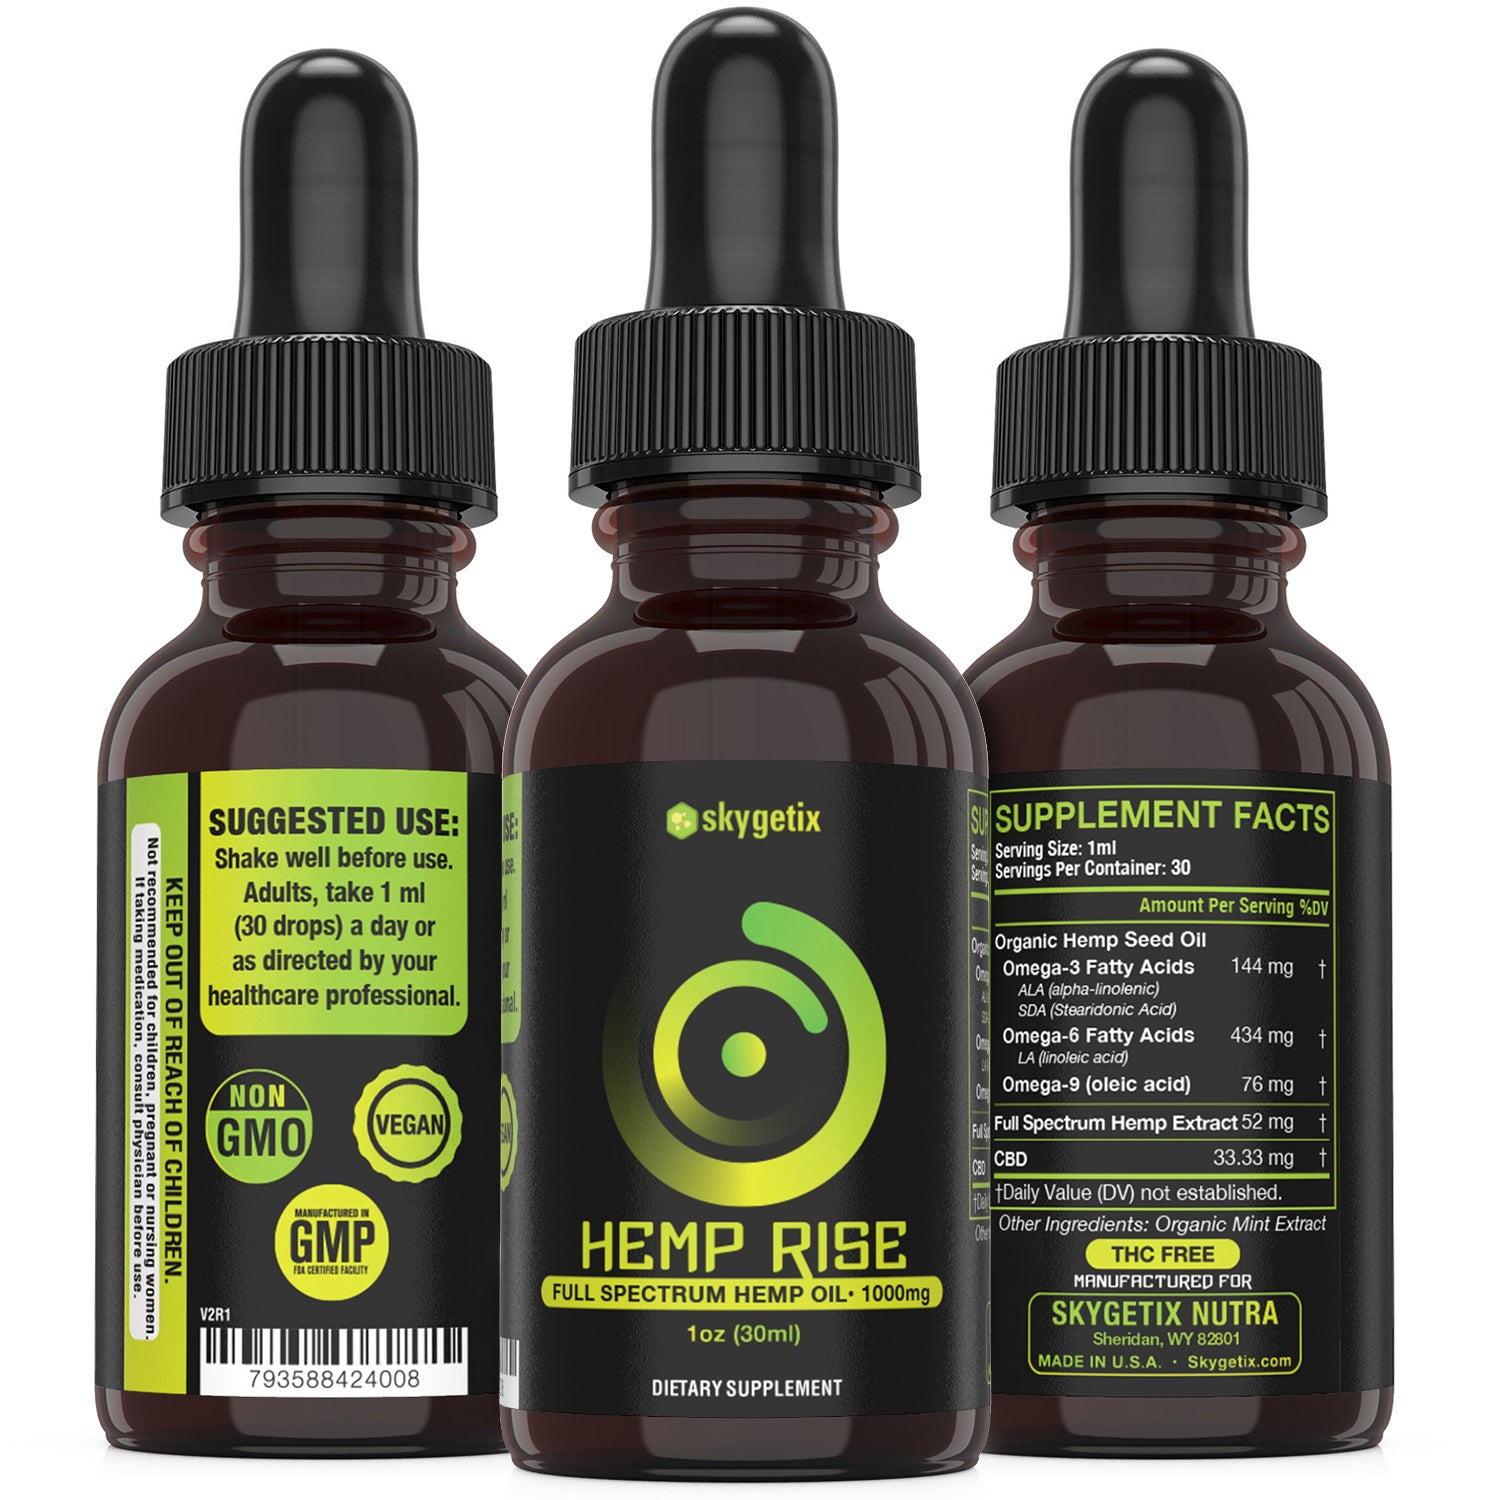 Premium Organic Full Spectrum Hemp Extract Drops 1000mg - Skygetix Nutra